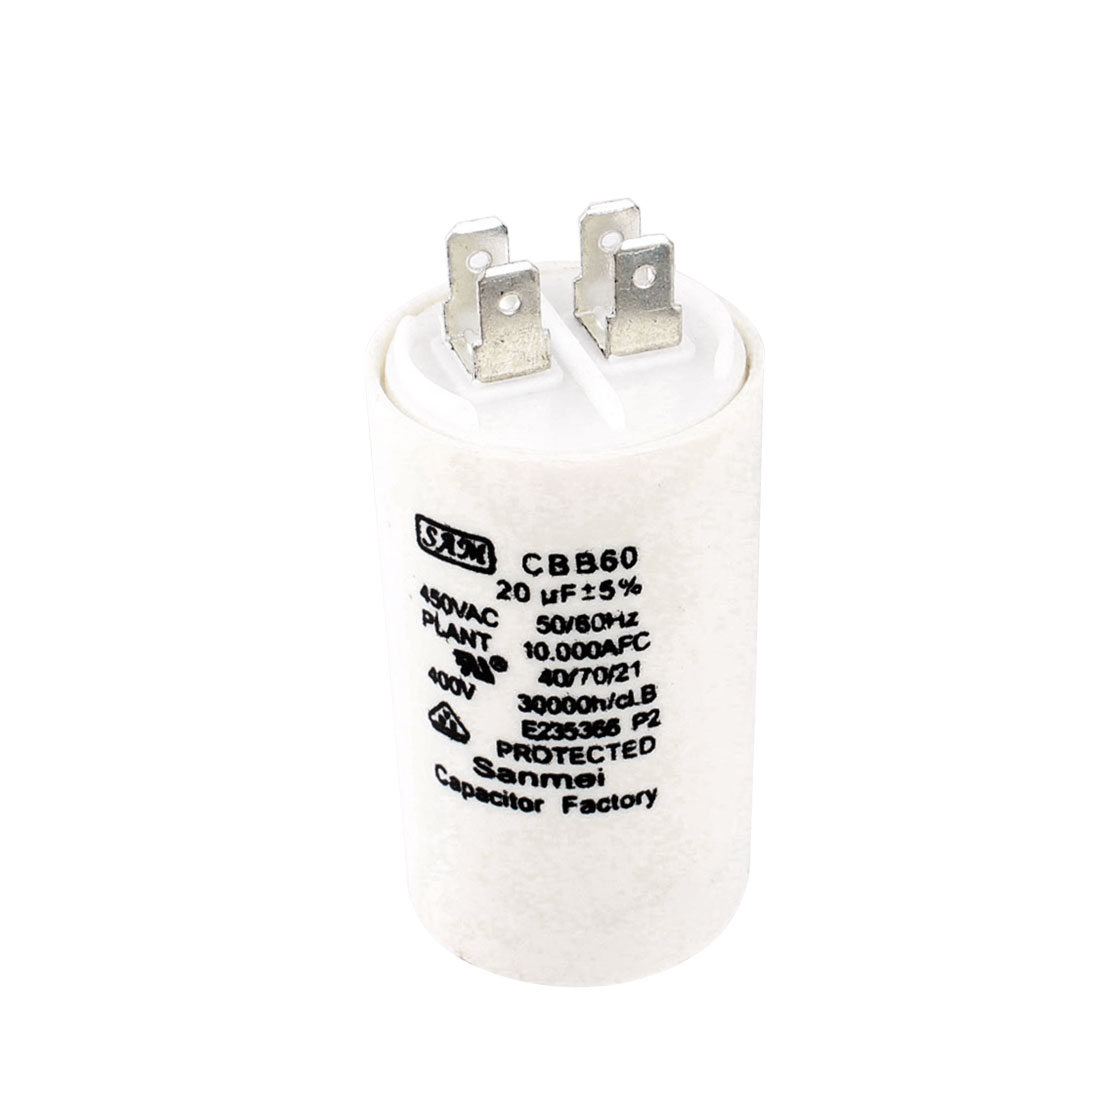 AC 450V 20uF 5% Tolerance 4 Terminals Cylinder Shaped Polypropylene Film Machine Motor Run Capacitor CBB60